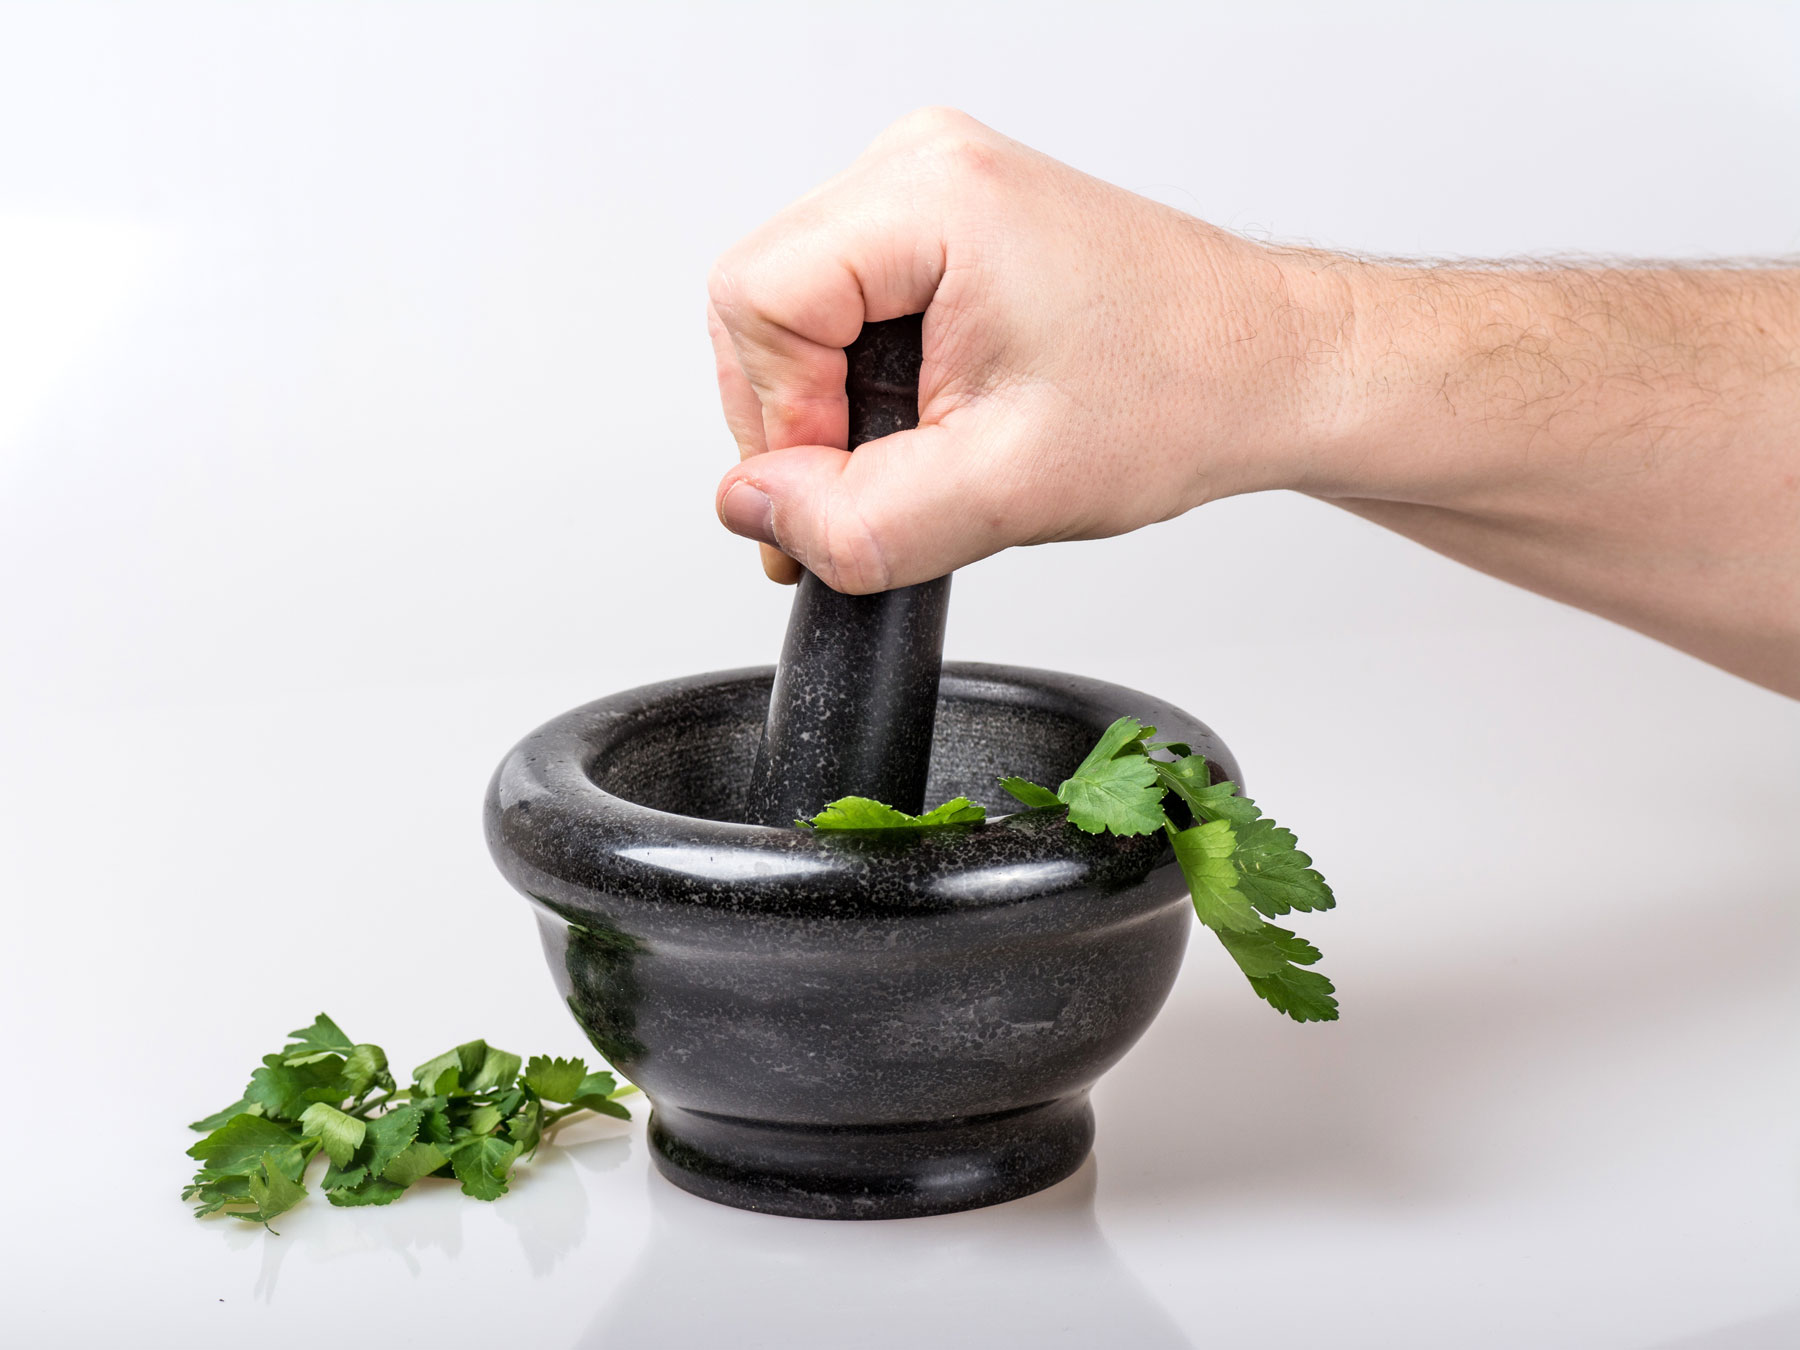 Mortar and pestle crushing herbs